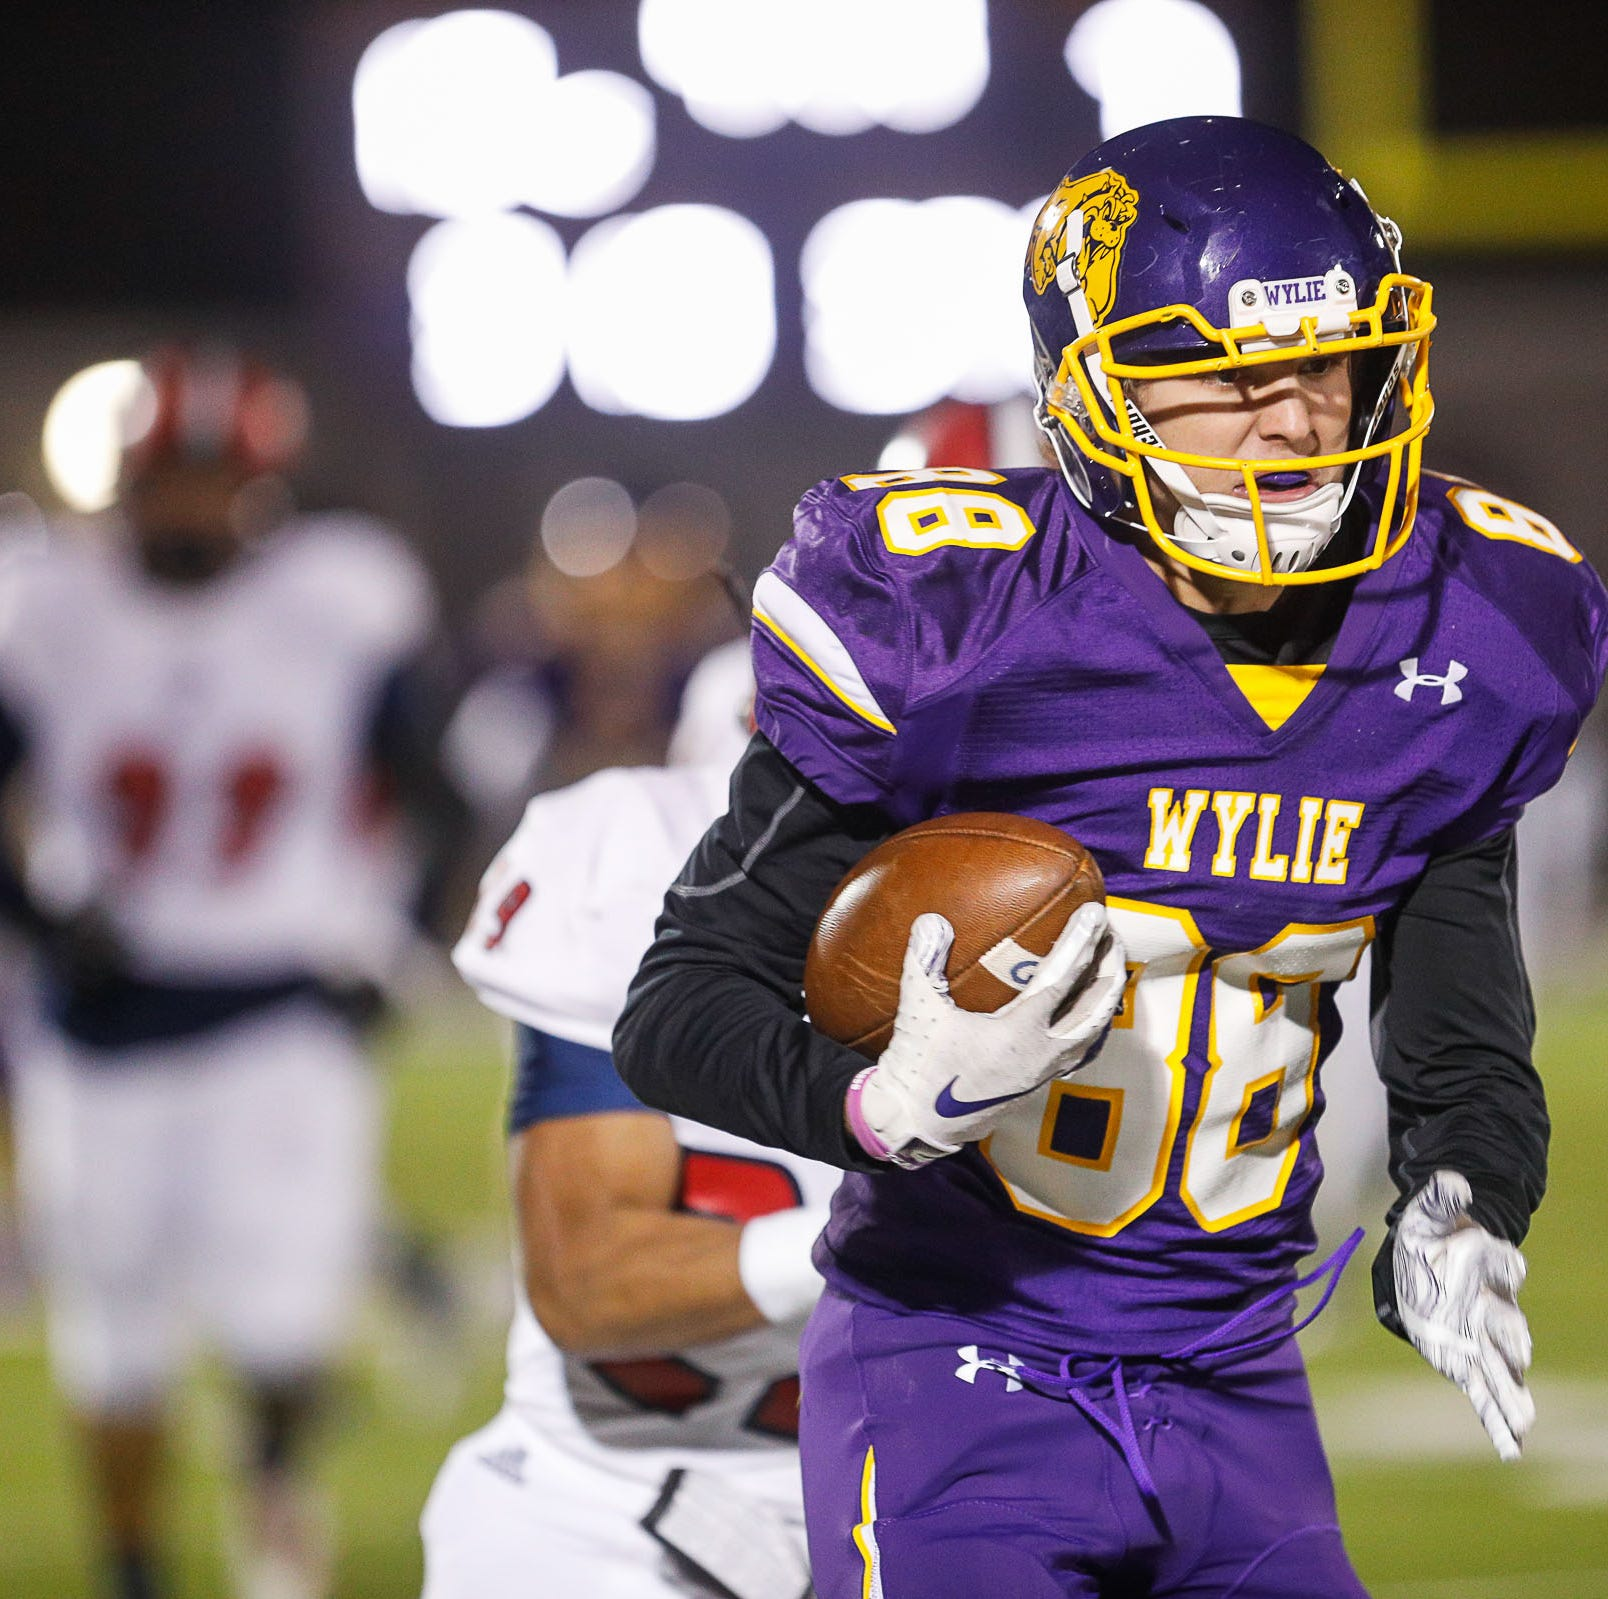 Abilene Wylie football goes winless with loss to Plainview